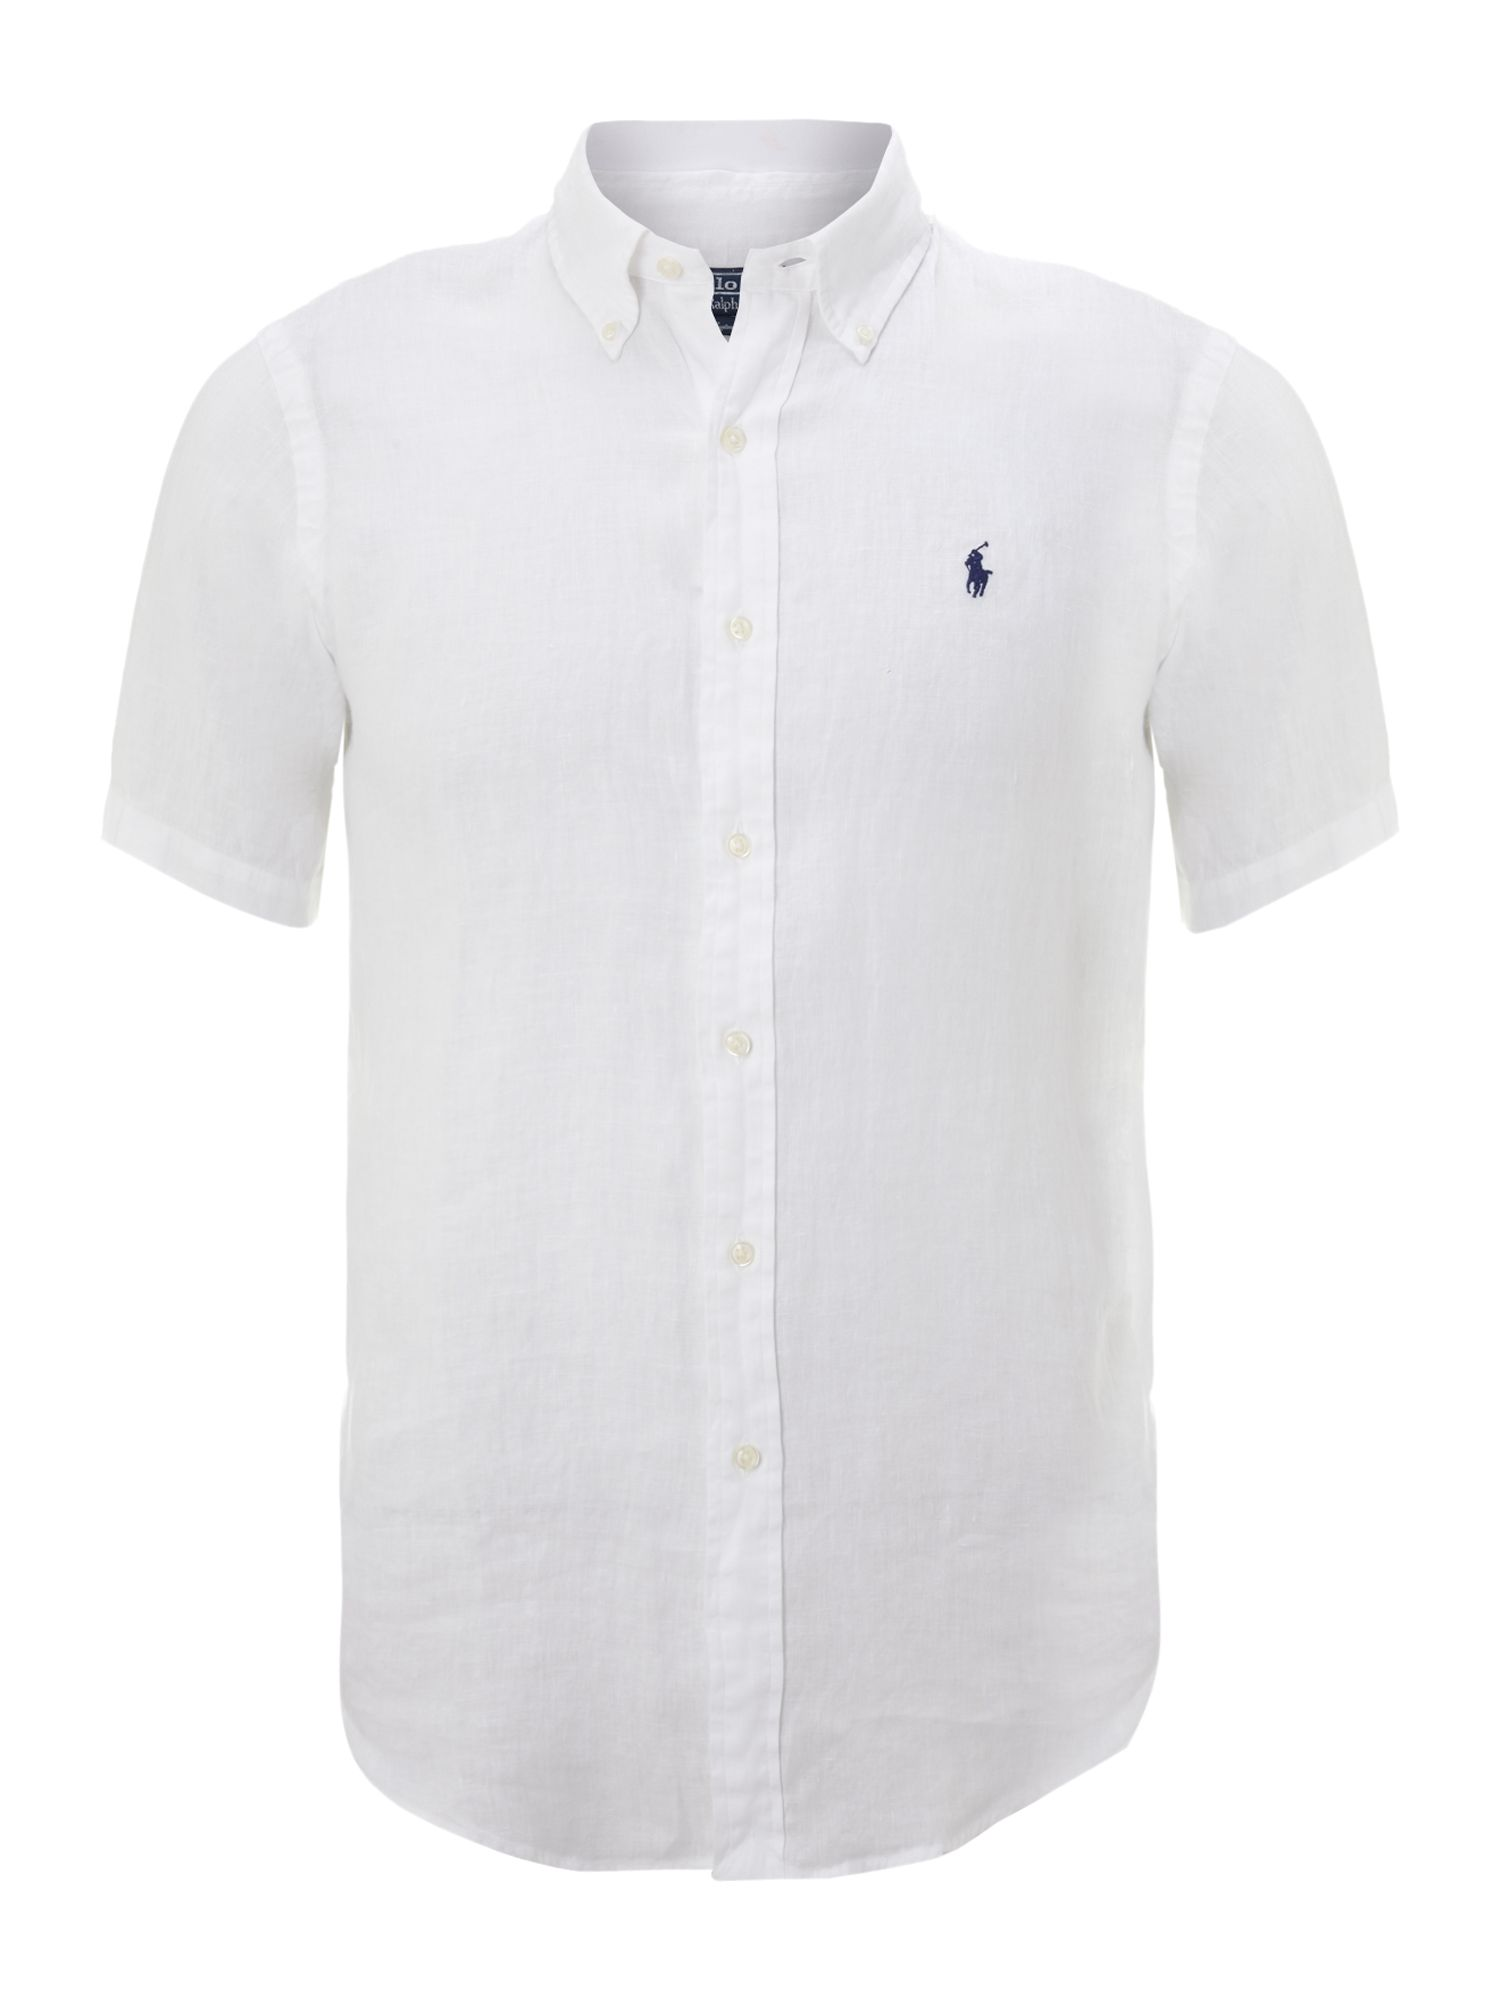 Polo ralph lauren short sleeved custom fit shirt in white for Short sleeved shirts for men